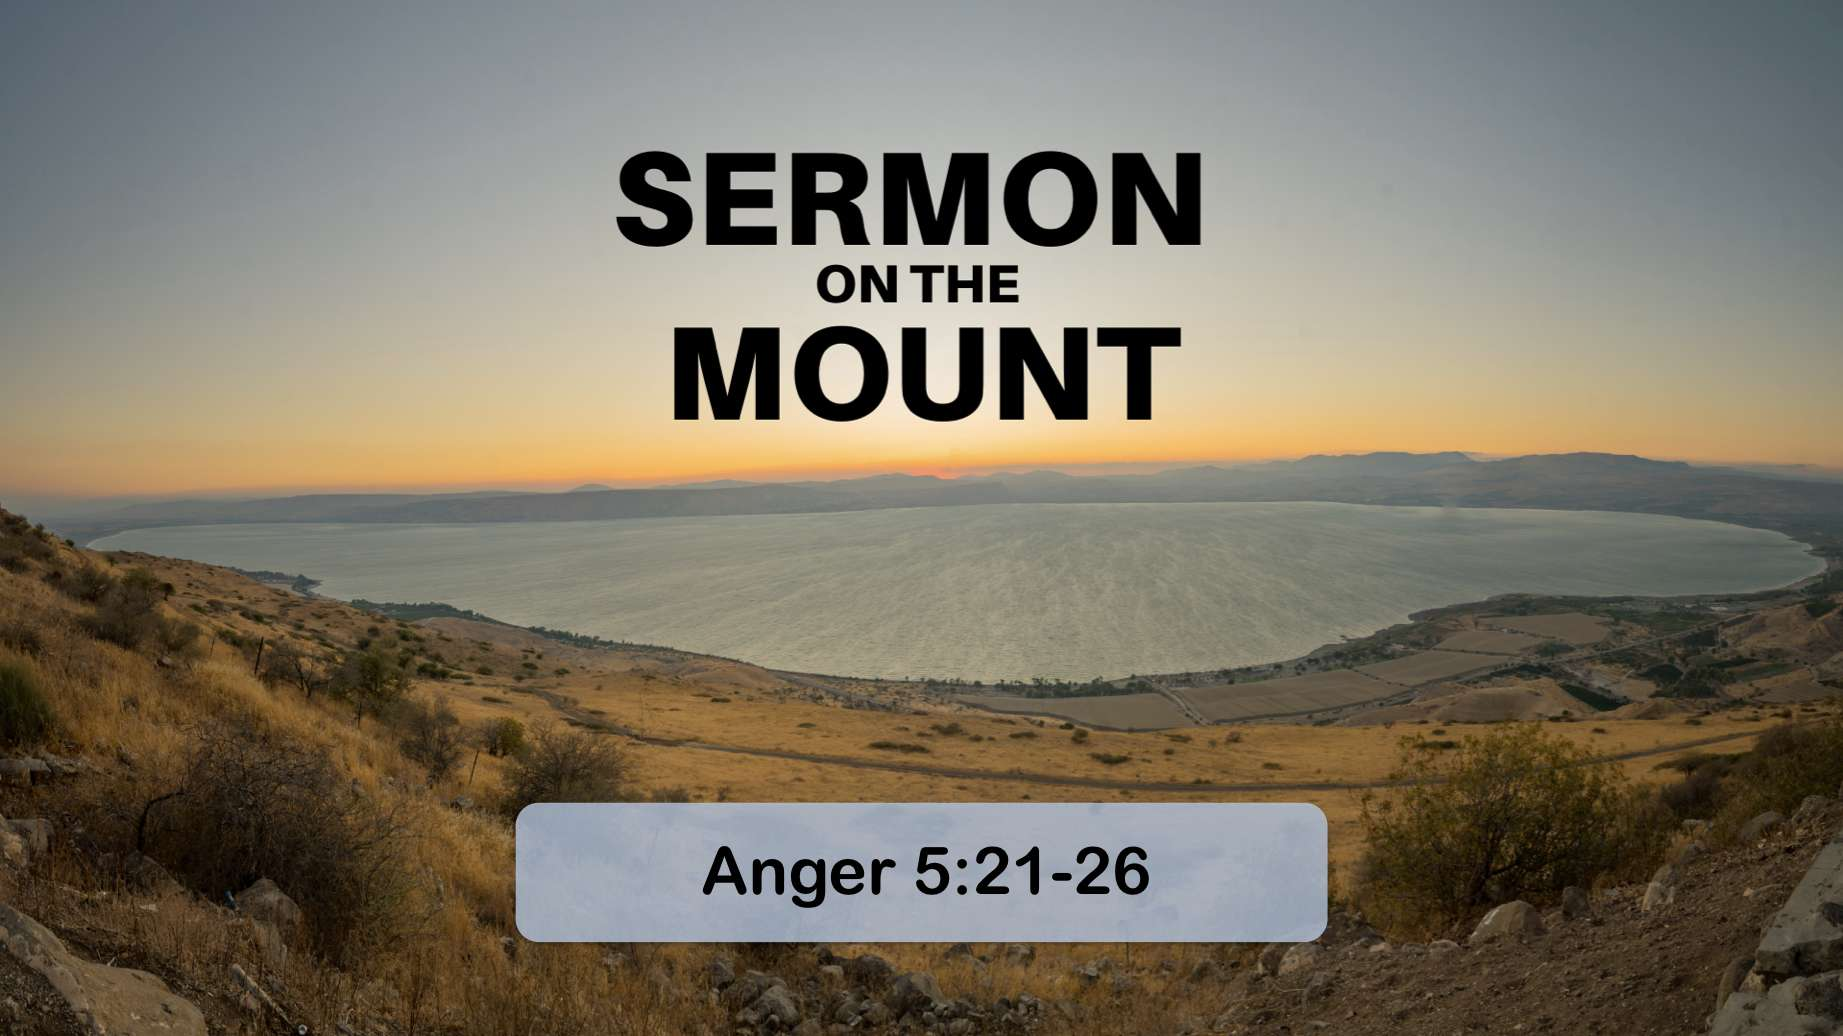 The Sermon on the Mount 4 – Anger